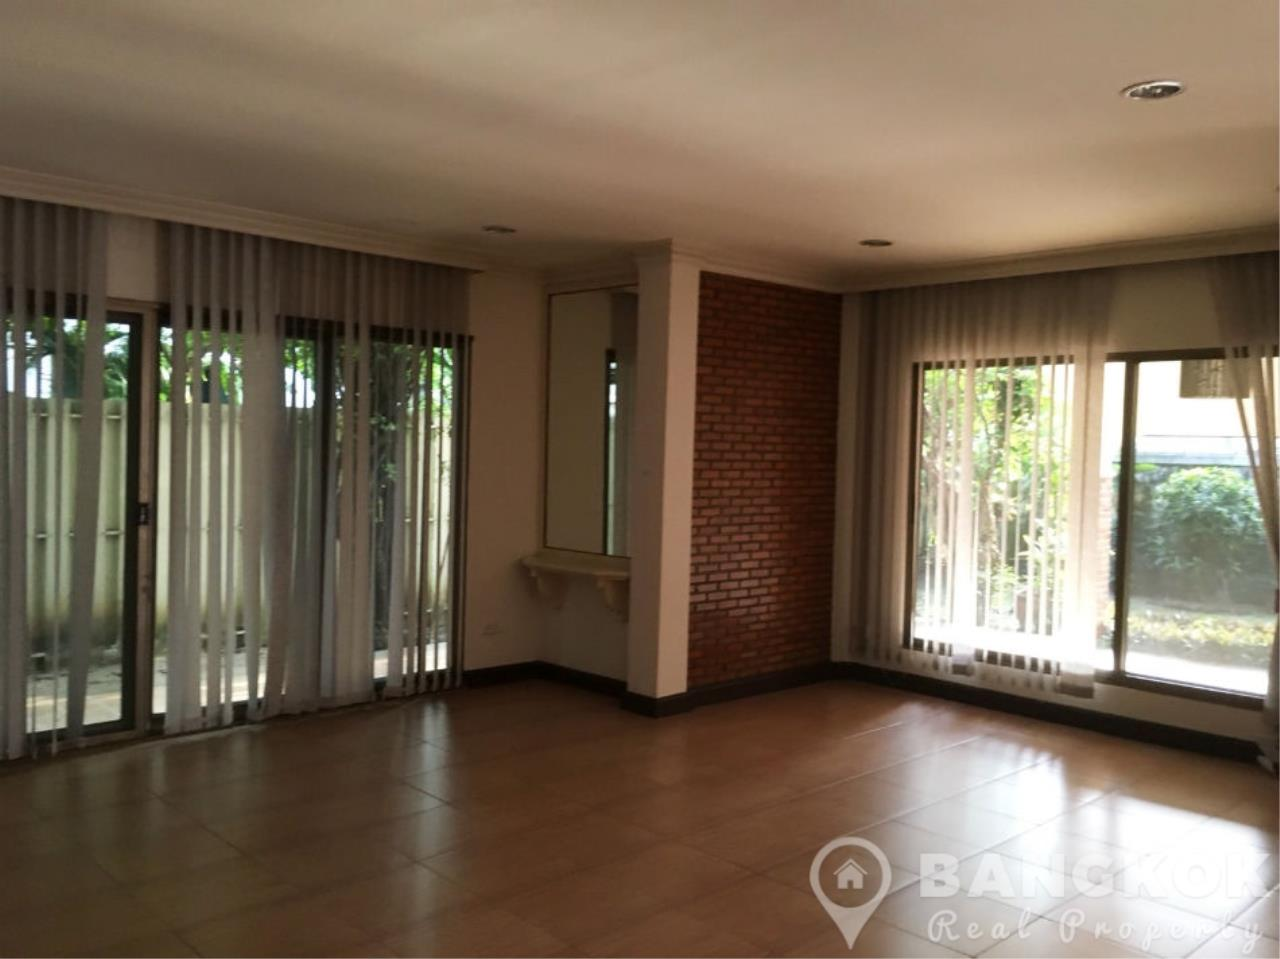 Bangkok Real Property Agency's Spacious 3 Bed 3 Bath Detached Thonglor House  1